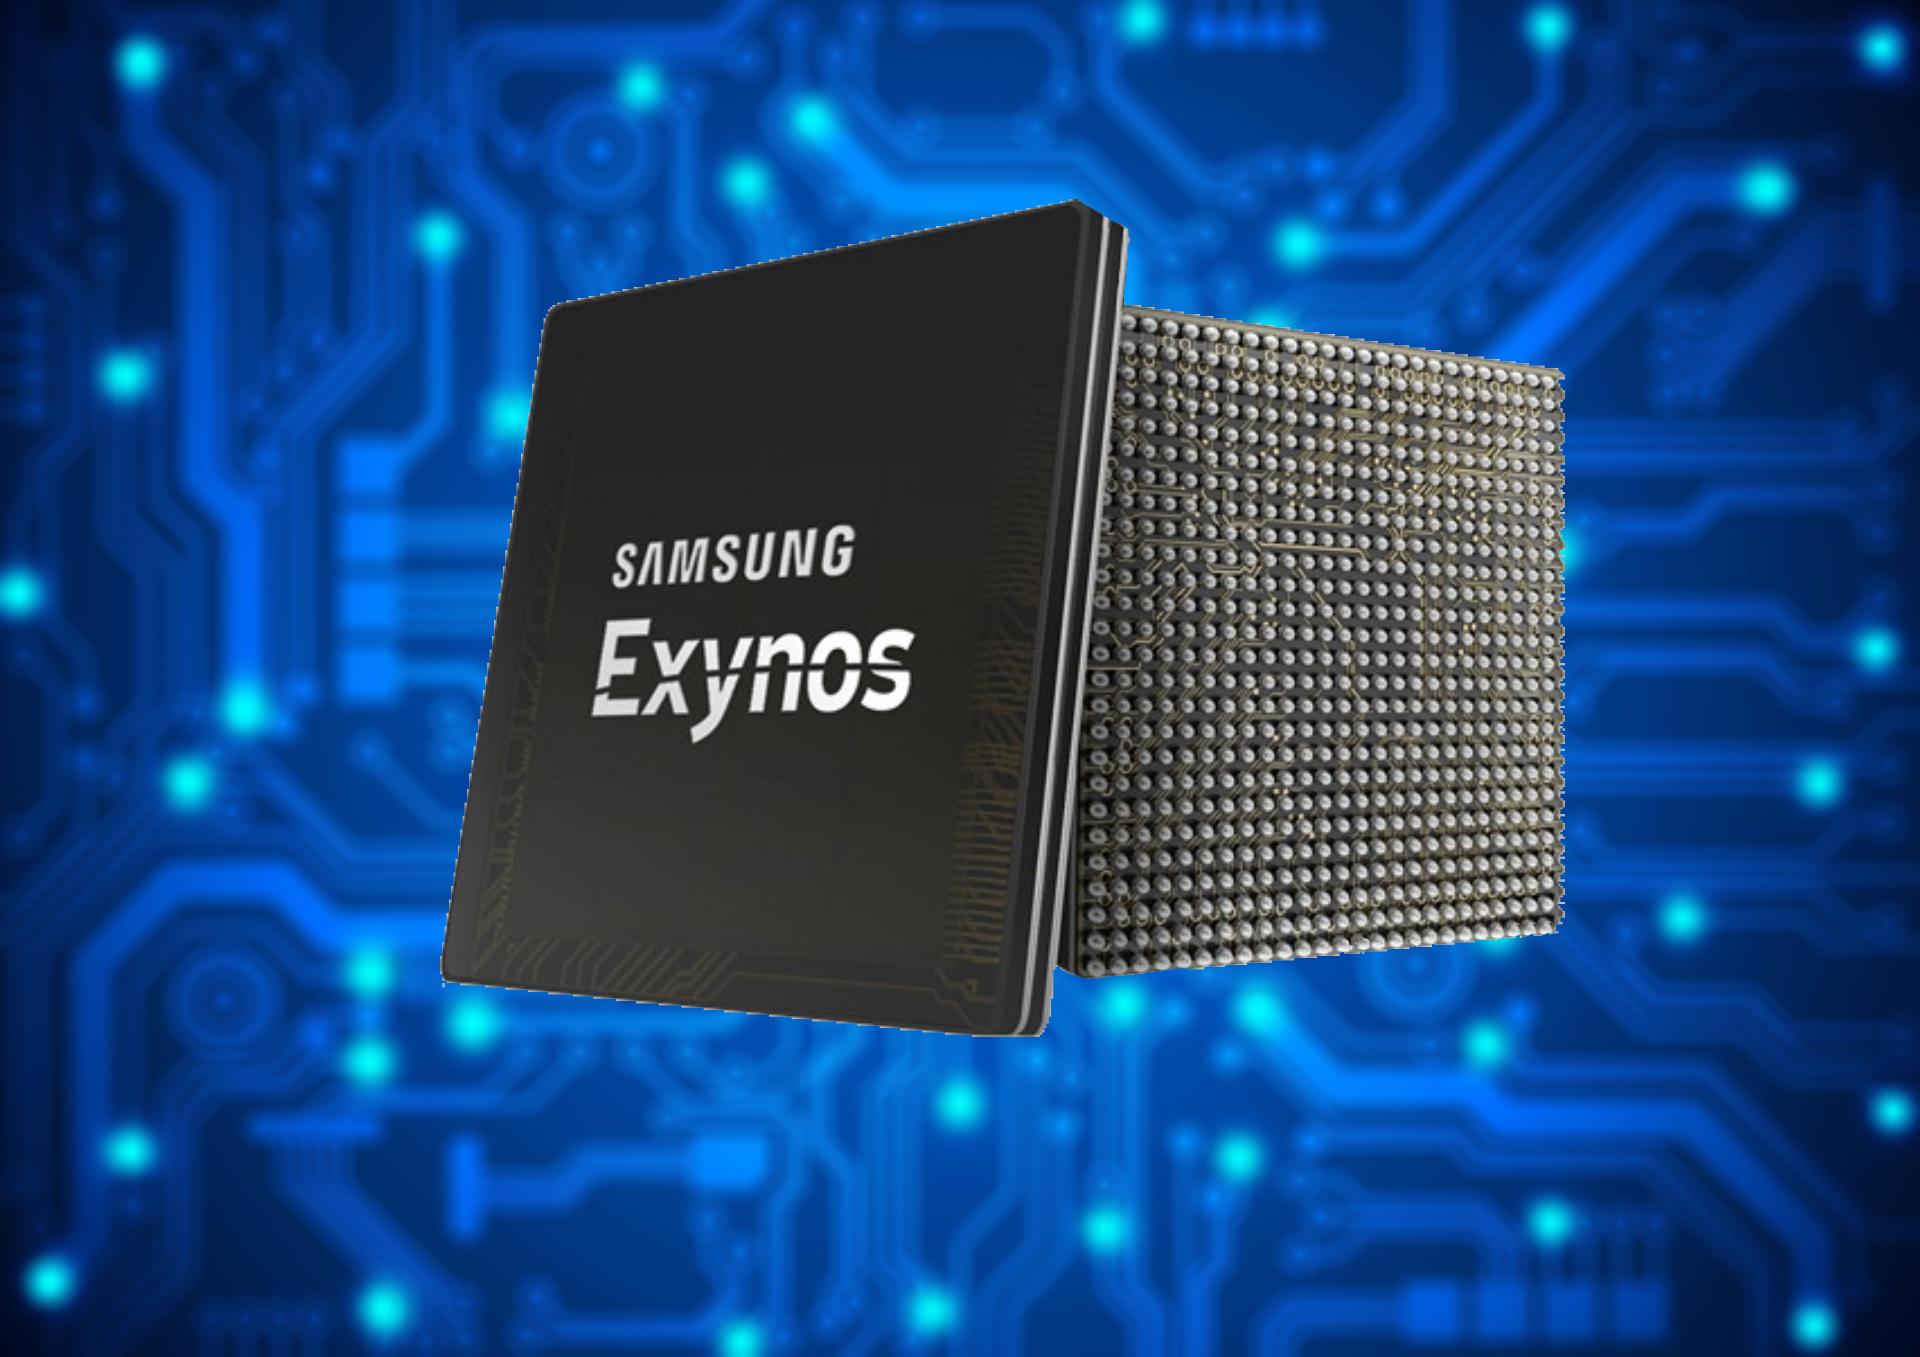 laptop-samsung-procesor-exynos-2200-grafika-amd-systemem-windows-10-arm